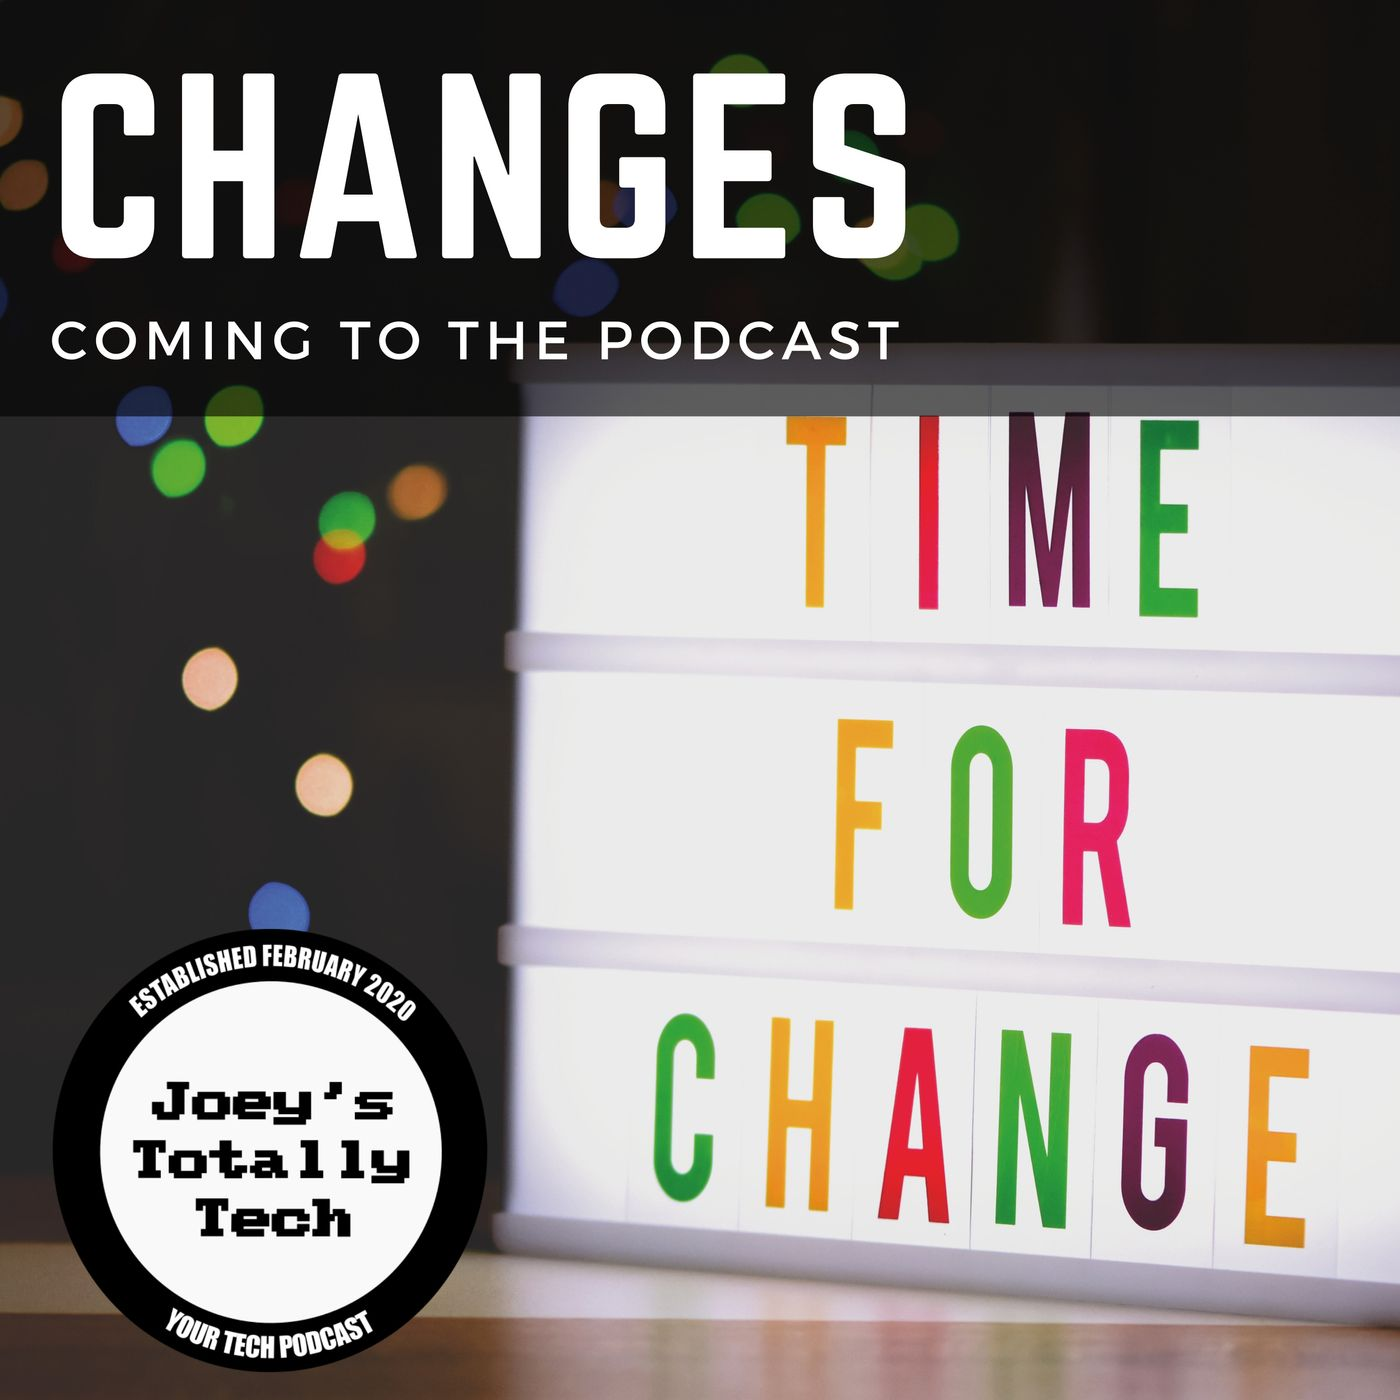 Changes Coming to the Podcast